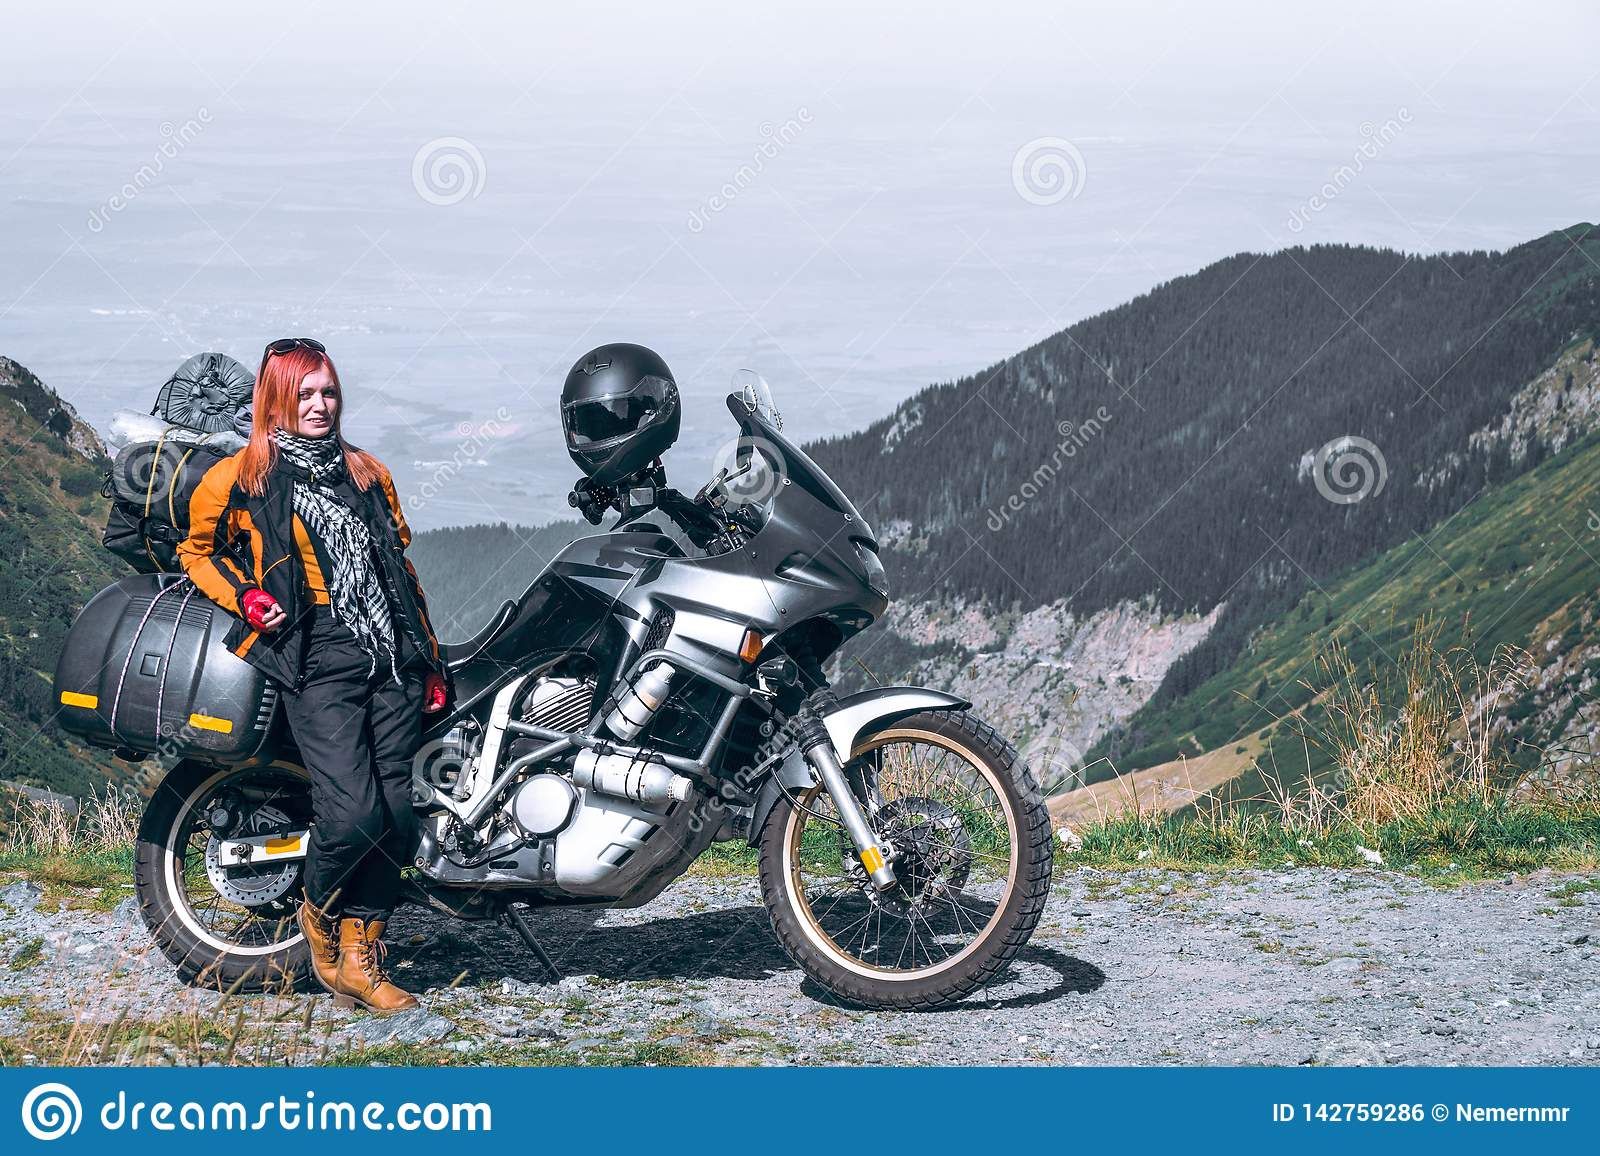 Young girl with adventure motorcycle. woman rider. Top of the mountain road. Motorbike vacation. Travel and active lifestyle